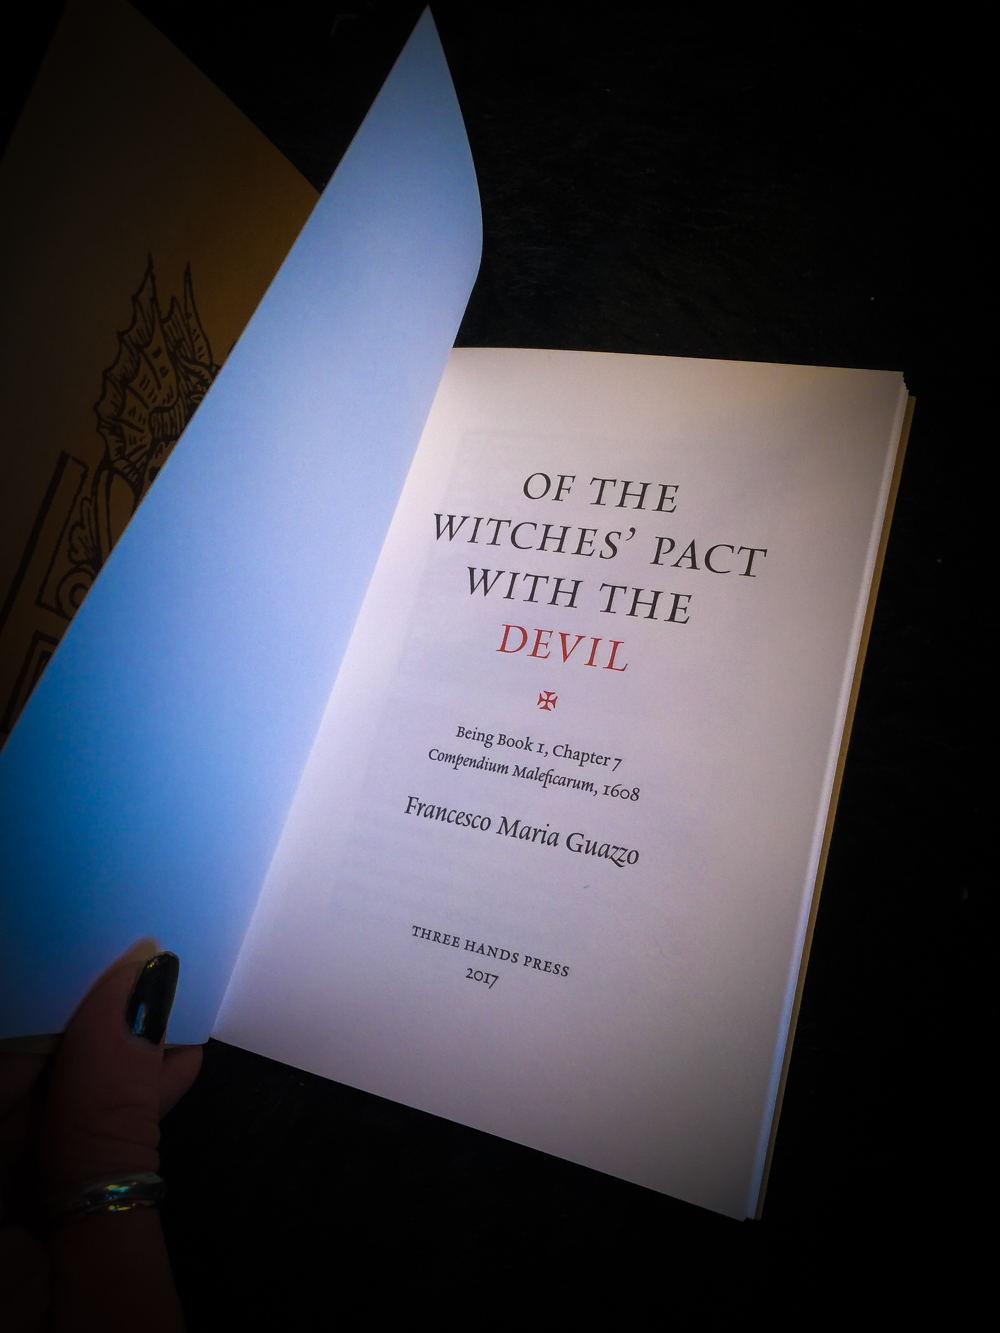 Of the Witches Pacts with the Devil